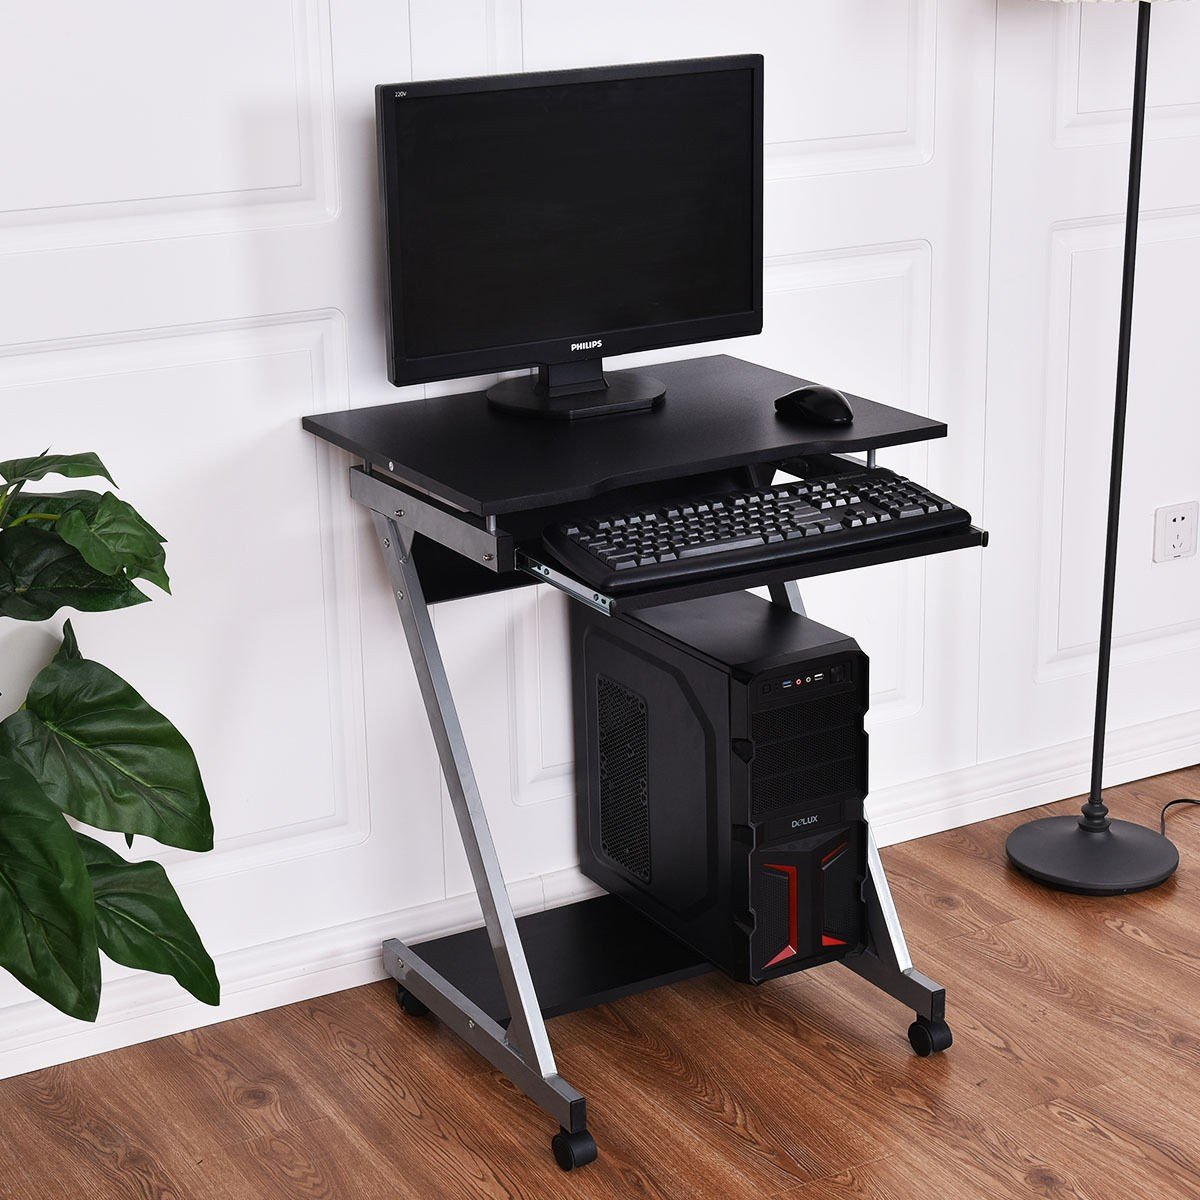 suppliers desk and oppenup table manufacturers with on wheels casters computer at com